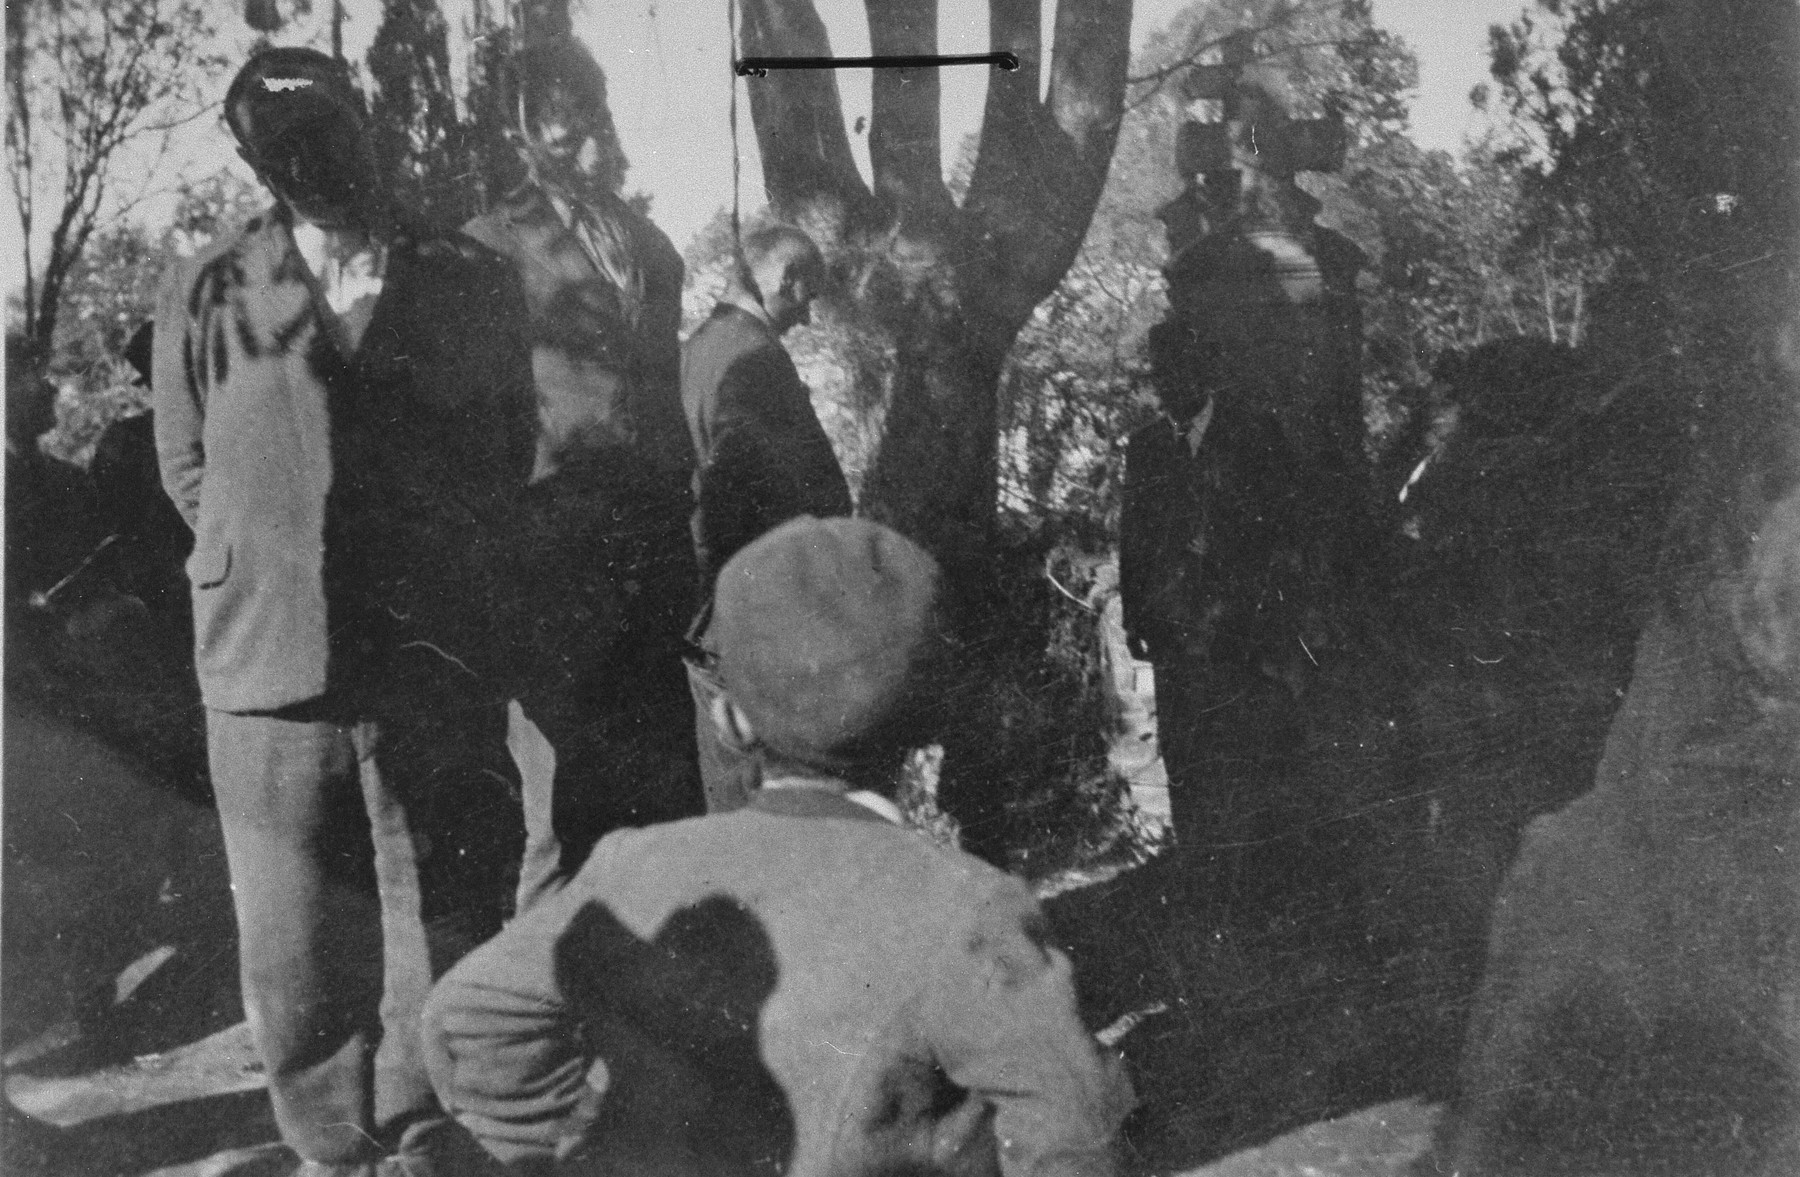 Local residents (a child among them) attend the public hanging of civilians in the Pancevo city cemetery.